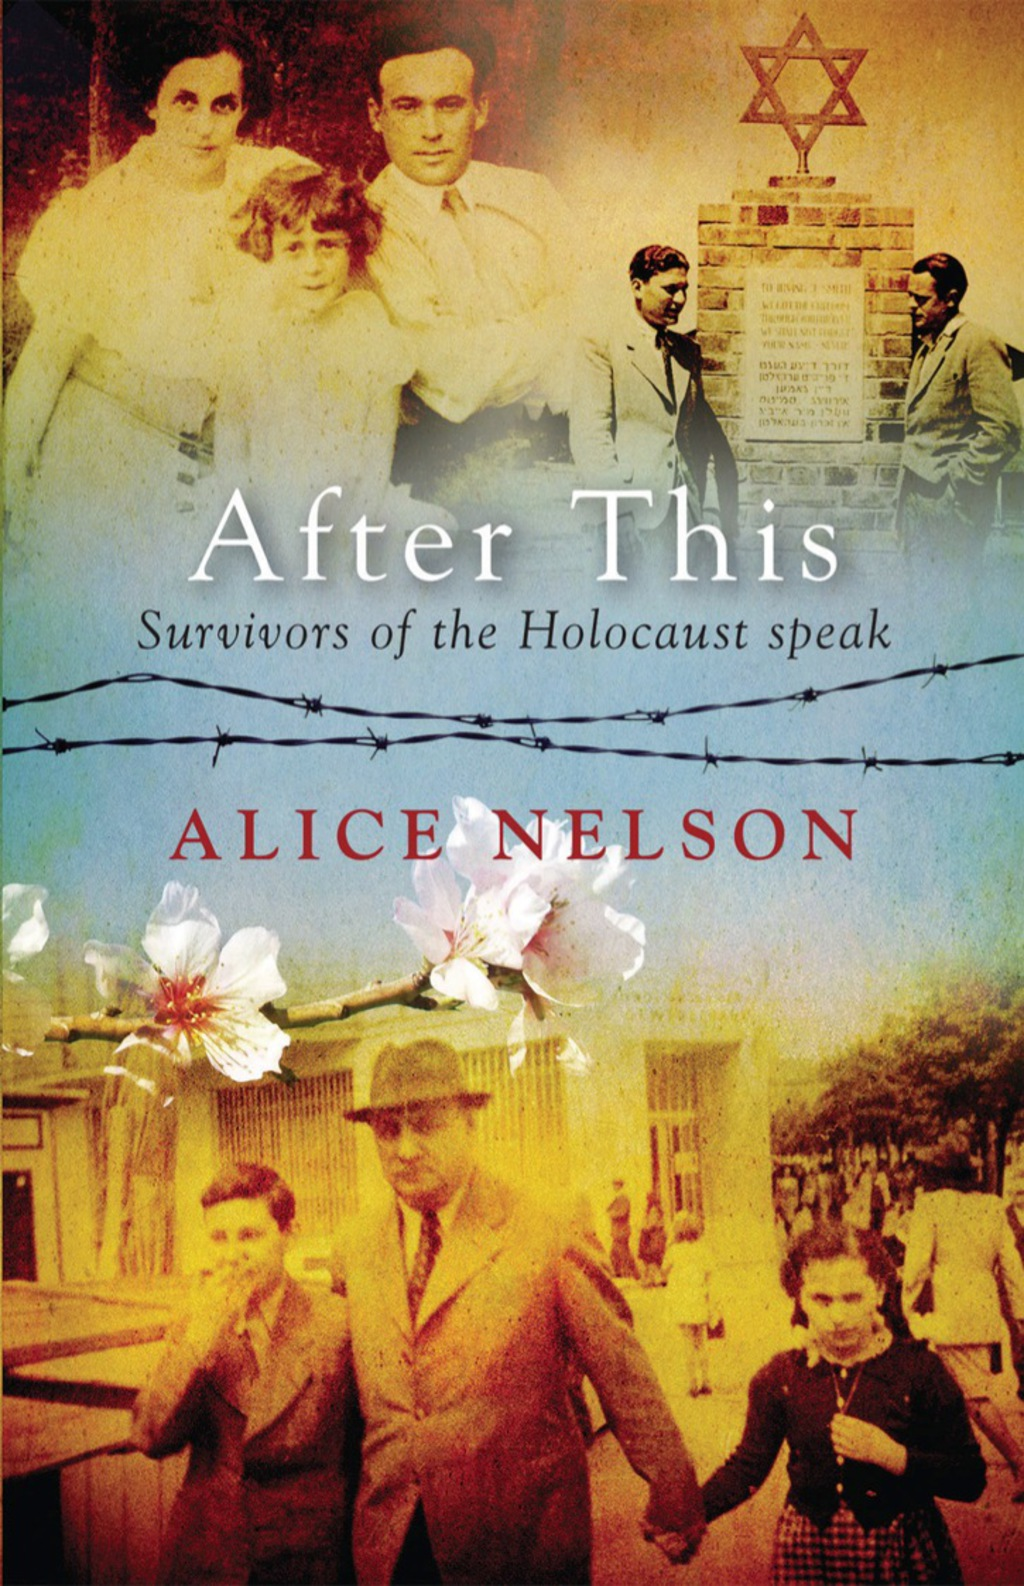 By Alice Nelson PRINTISBN: 9781925162363 E-TEXT ISBN: 9781925162363 Edition: 1